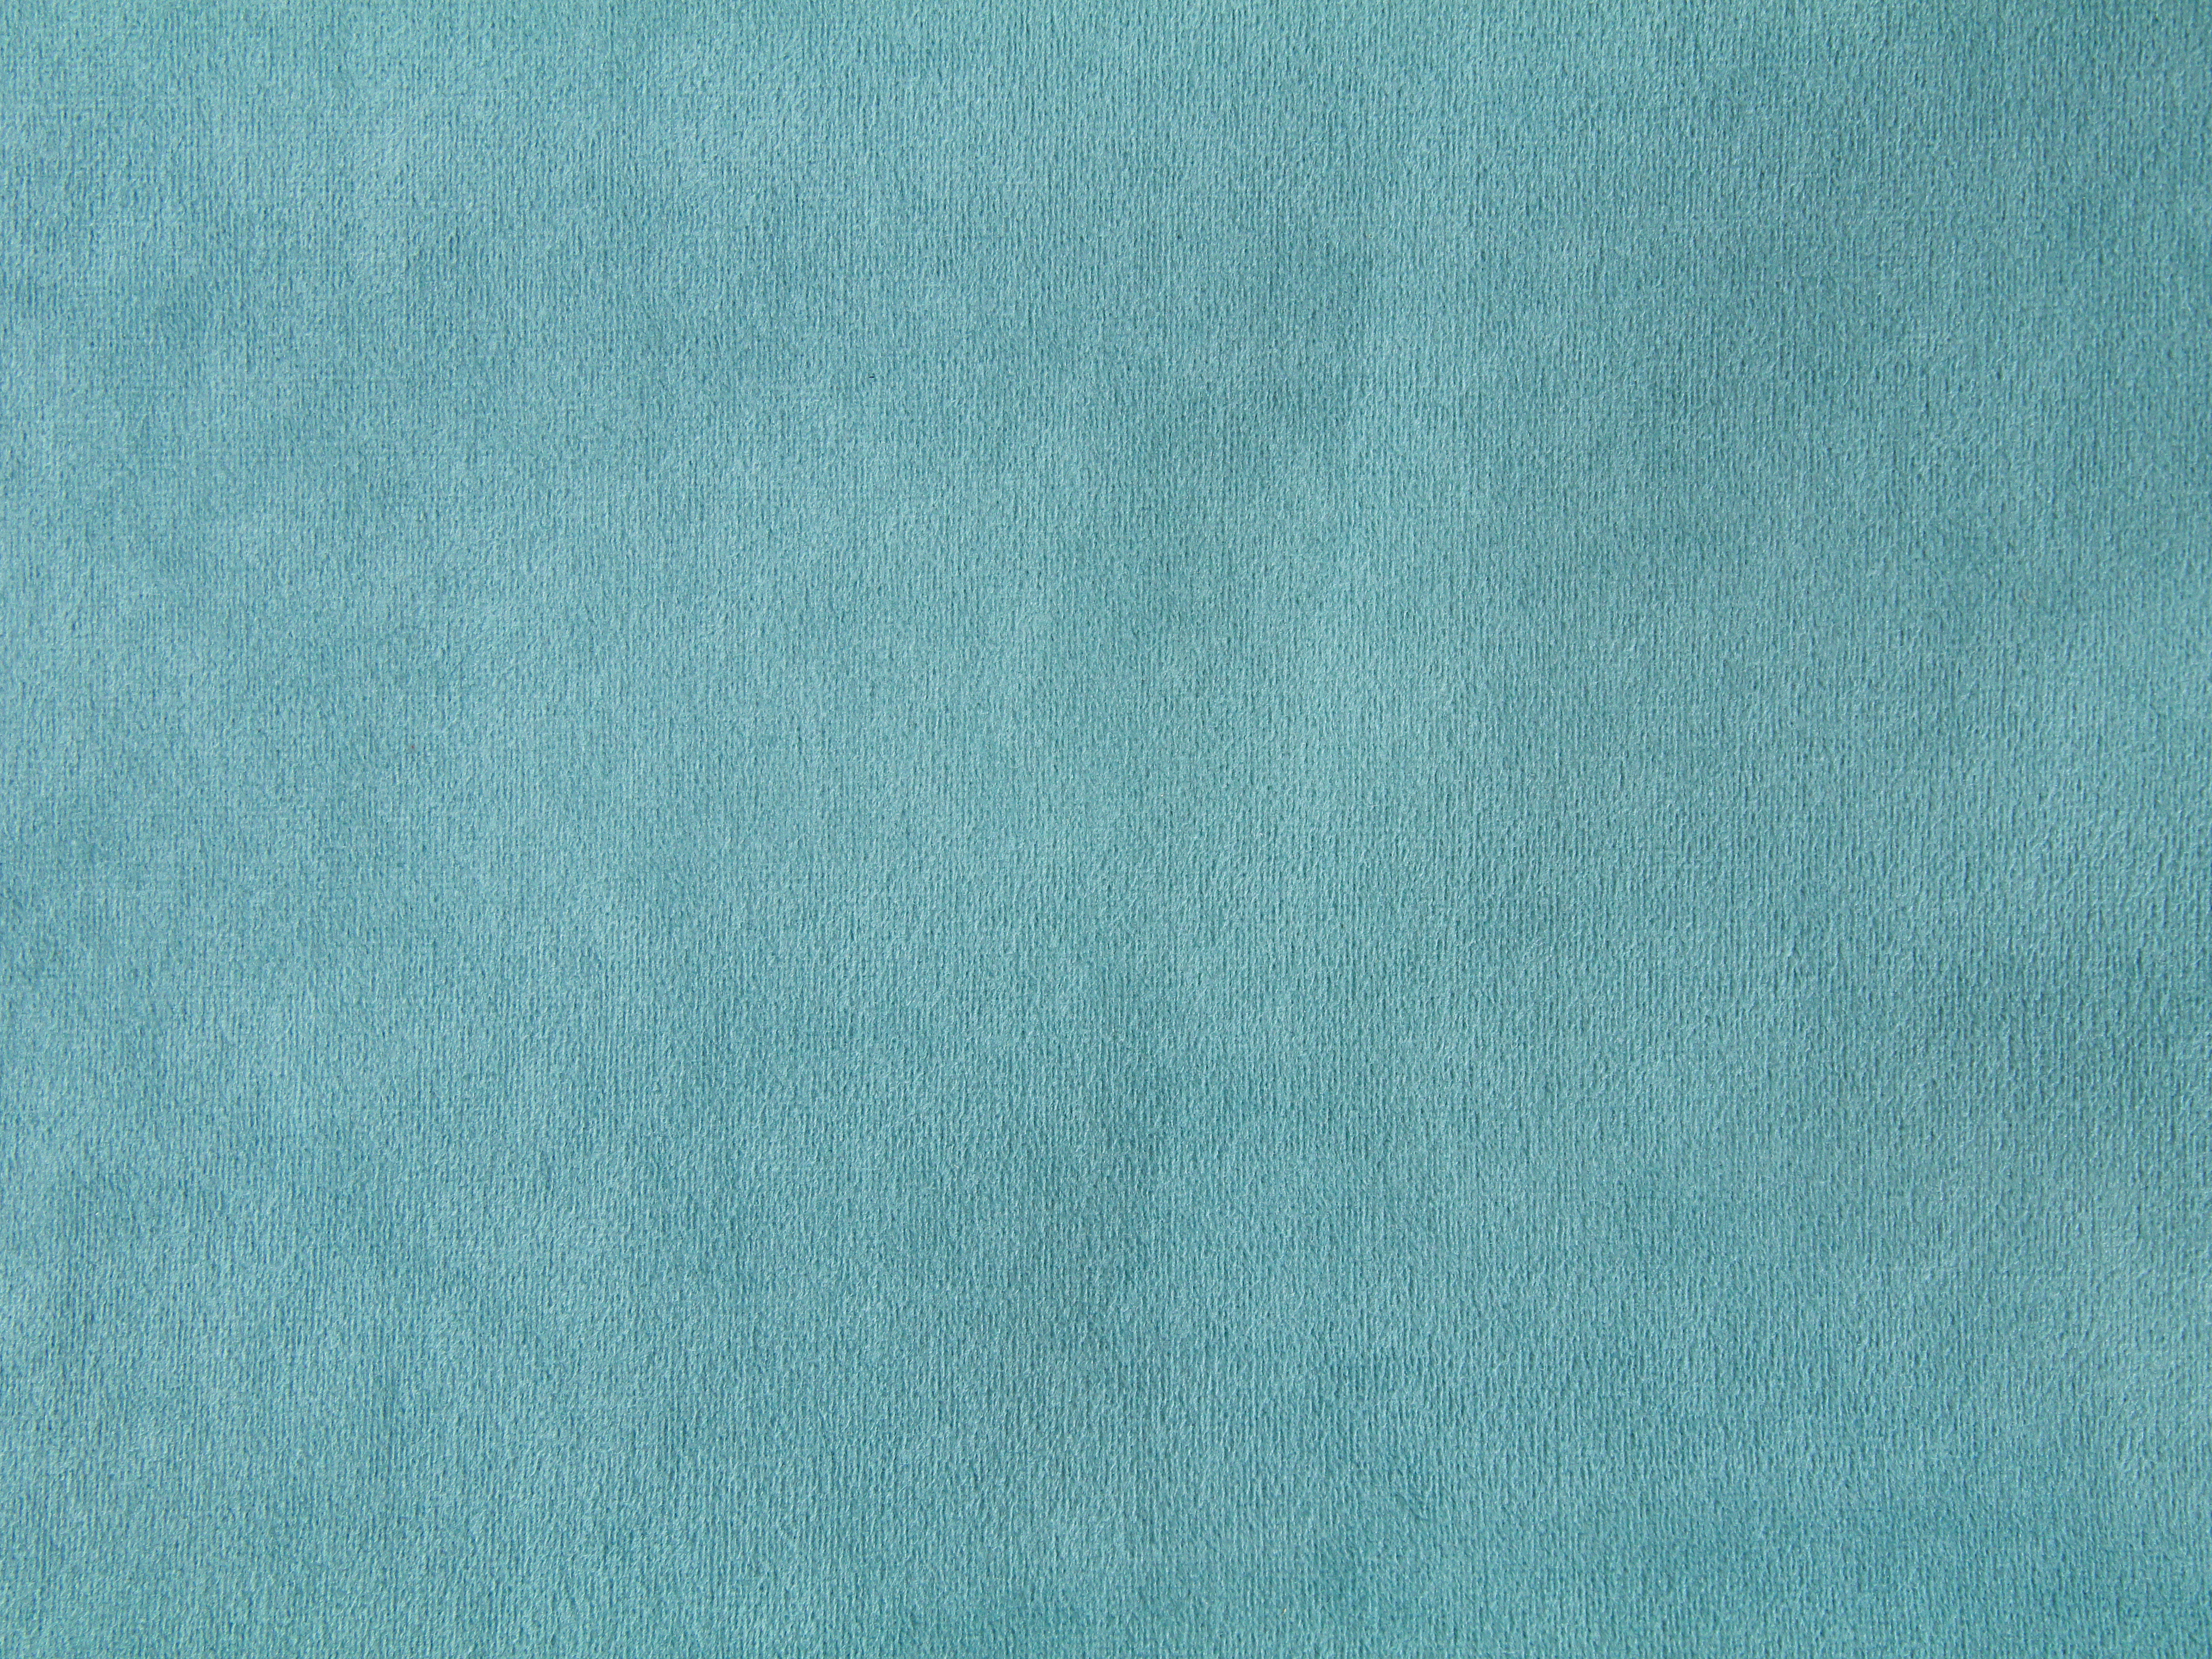 Teal Fabric Texture Soft Fuzzy Suede Cloth Stock Wallpaper HD Wallpapers Download Free Images Wallpaper [1000image.com]